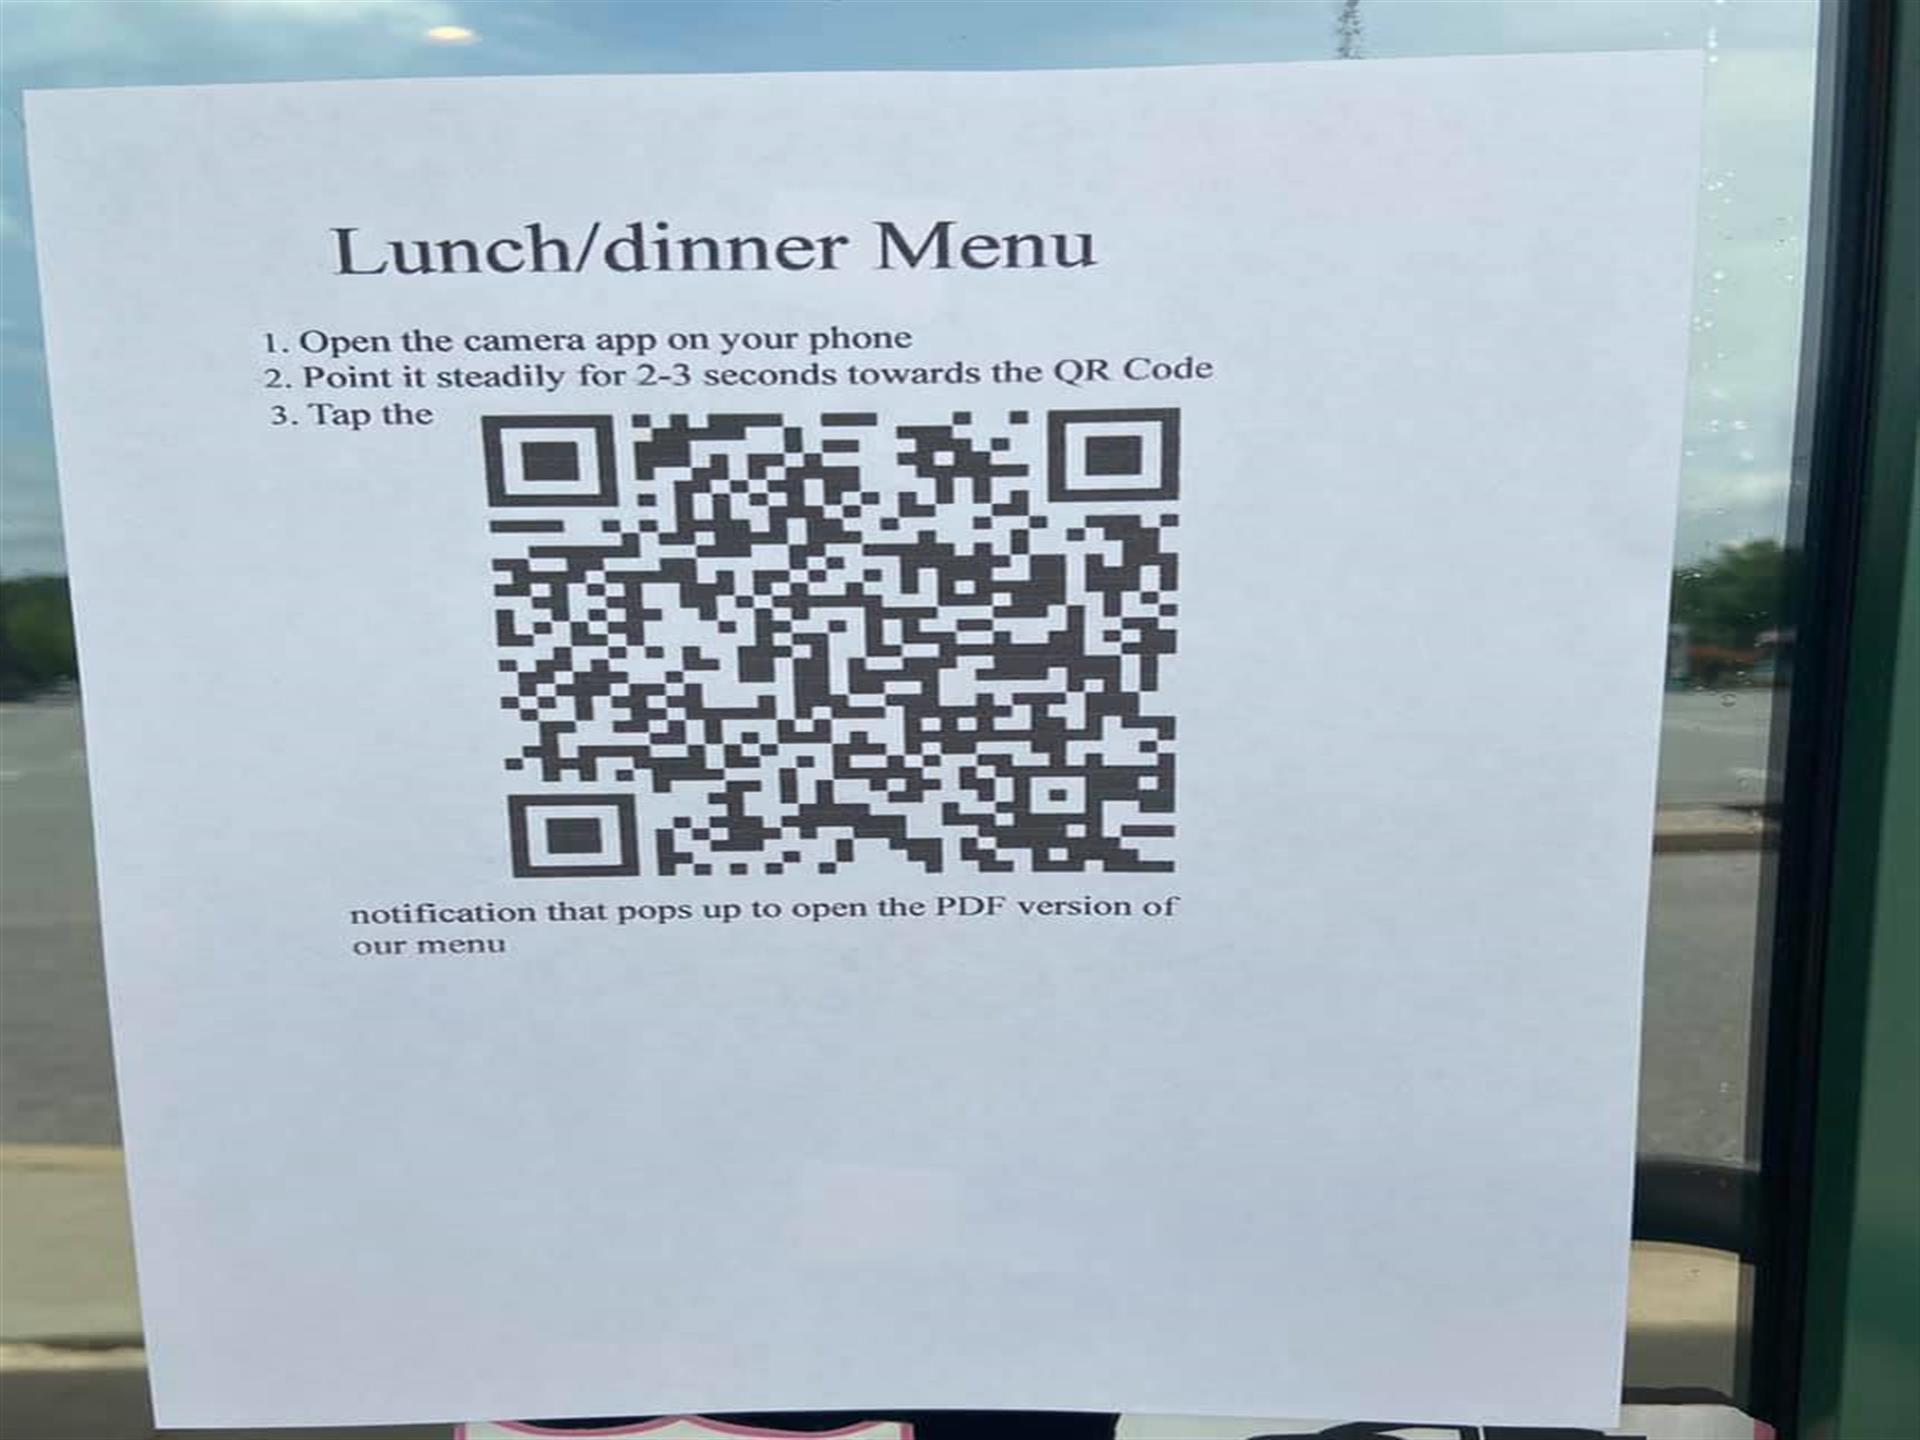 QR Code for our menu